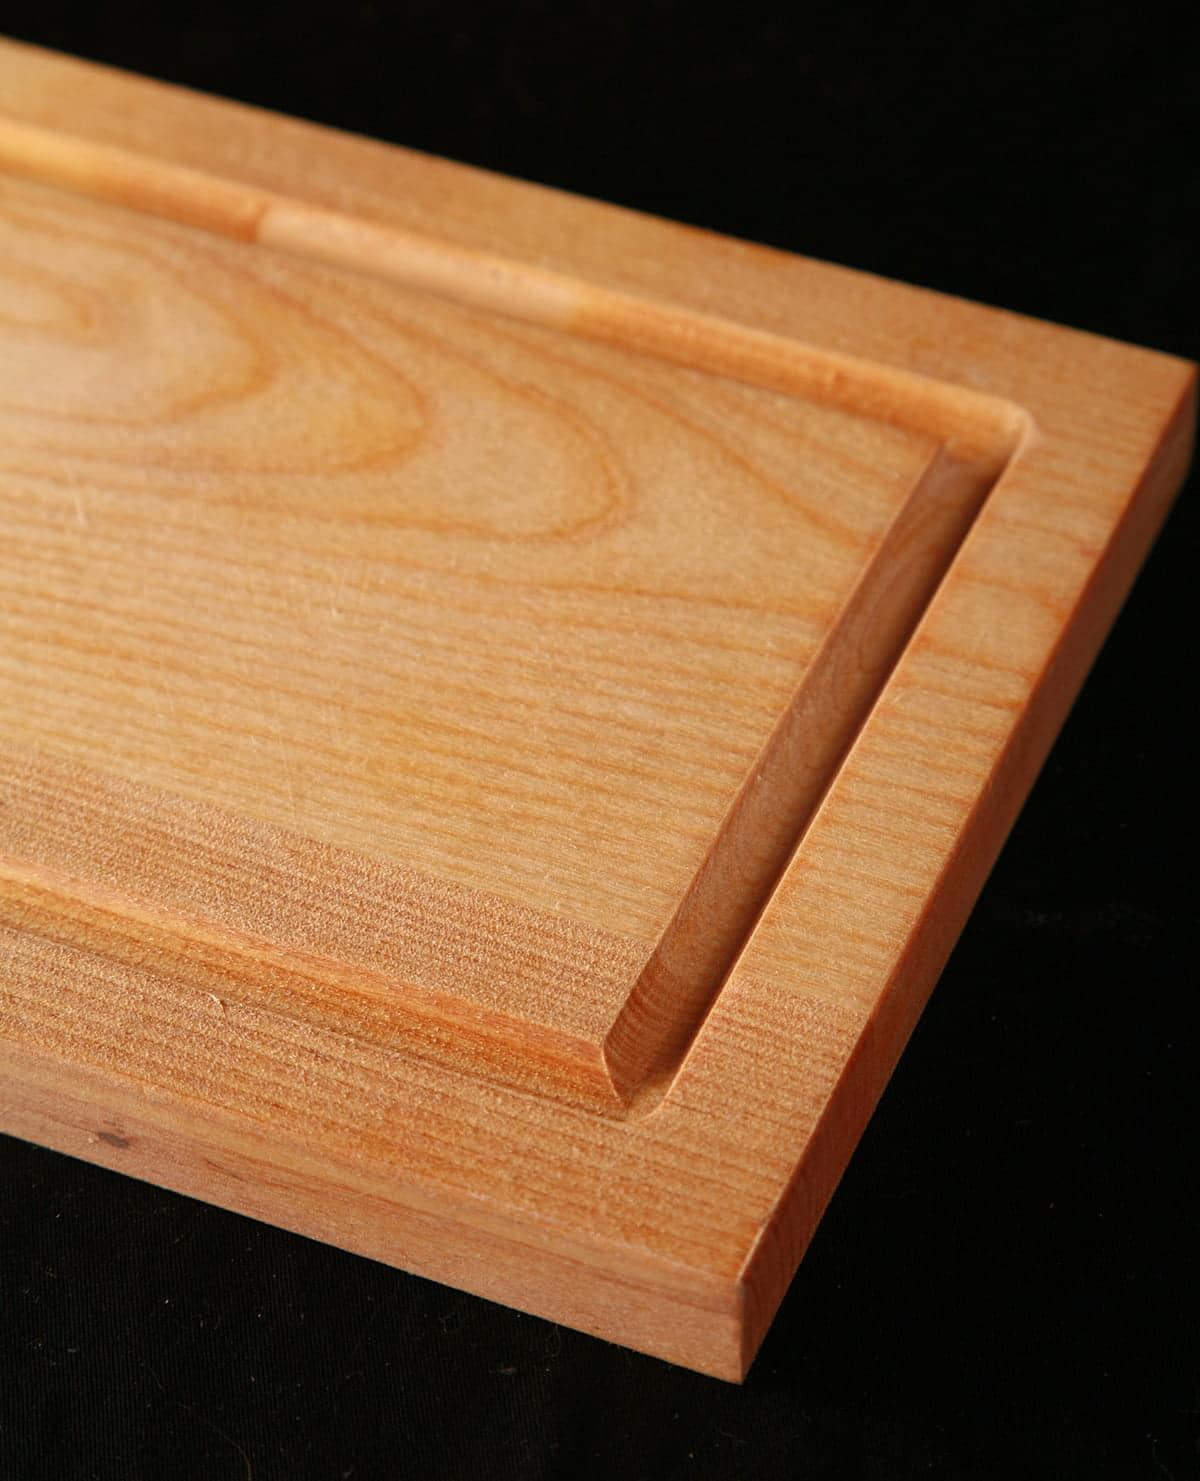 A small wooden cutting board with a groove cut around it.